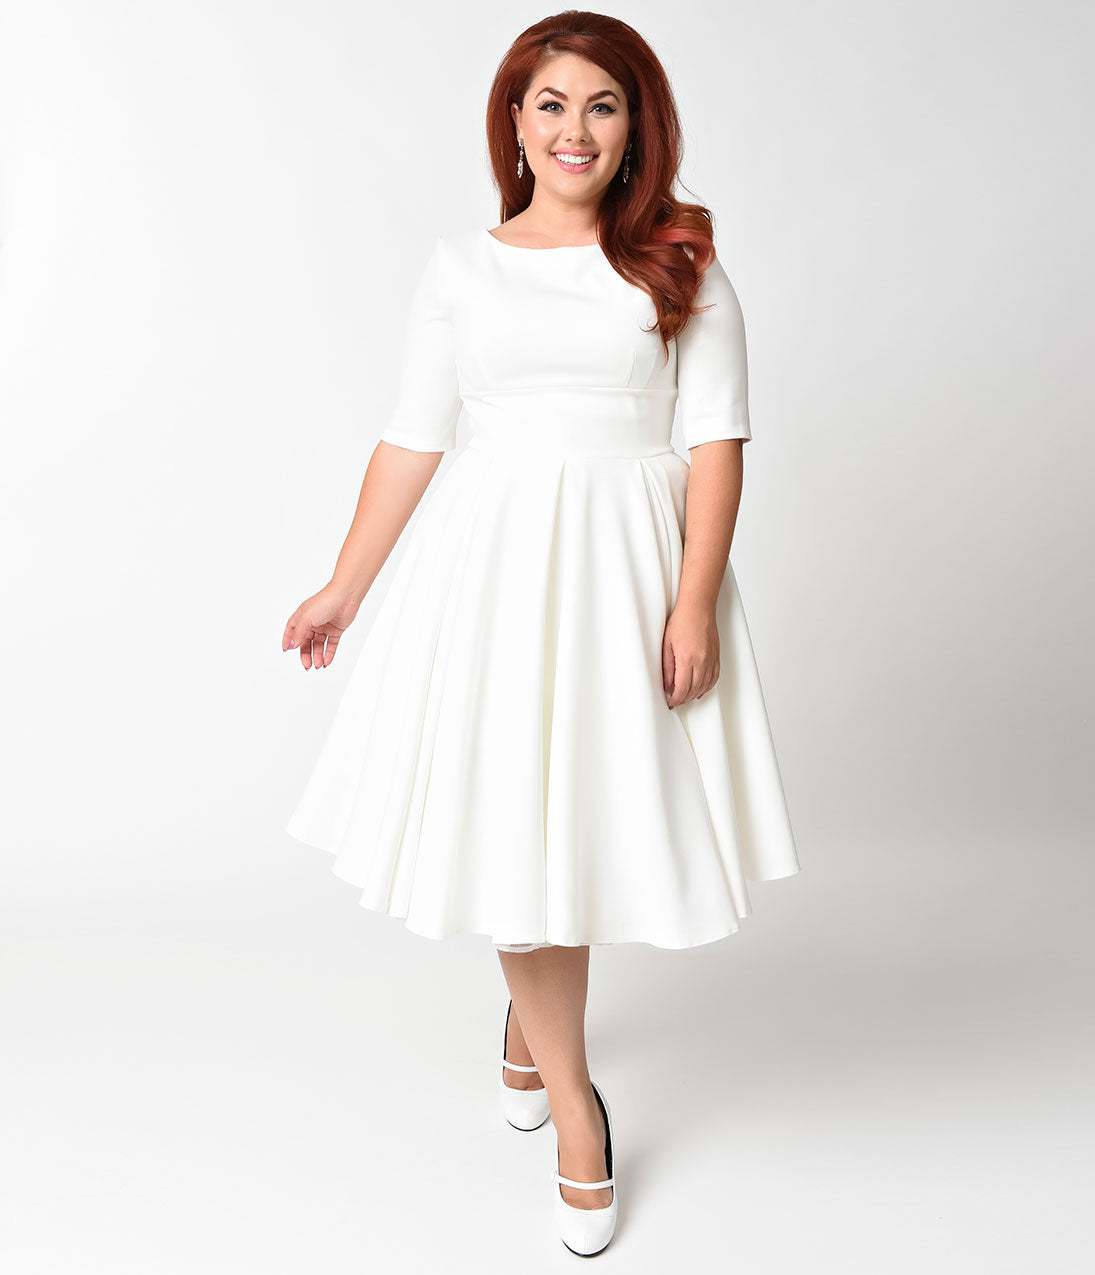 60s Wedding Dress | 1960s Style Wedding Dresses The Pretty Dress Company Plus Size Ivory Crepe Sleeved Hepburn Swing Dress $172.00 AT vintagedancer.com